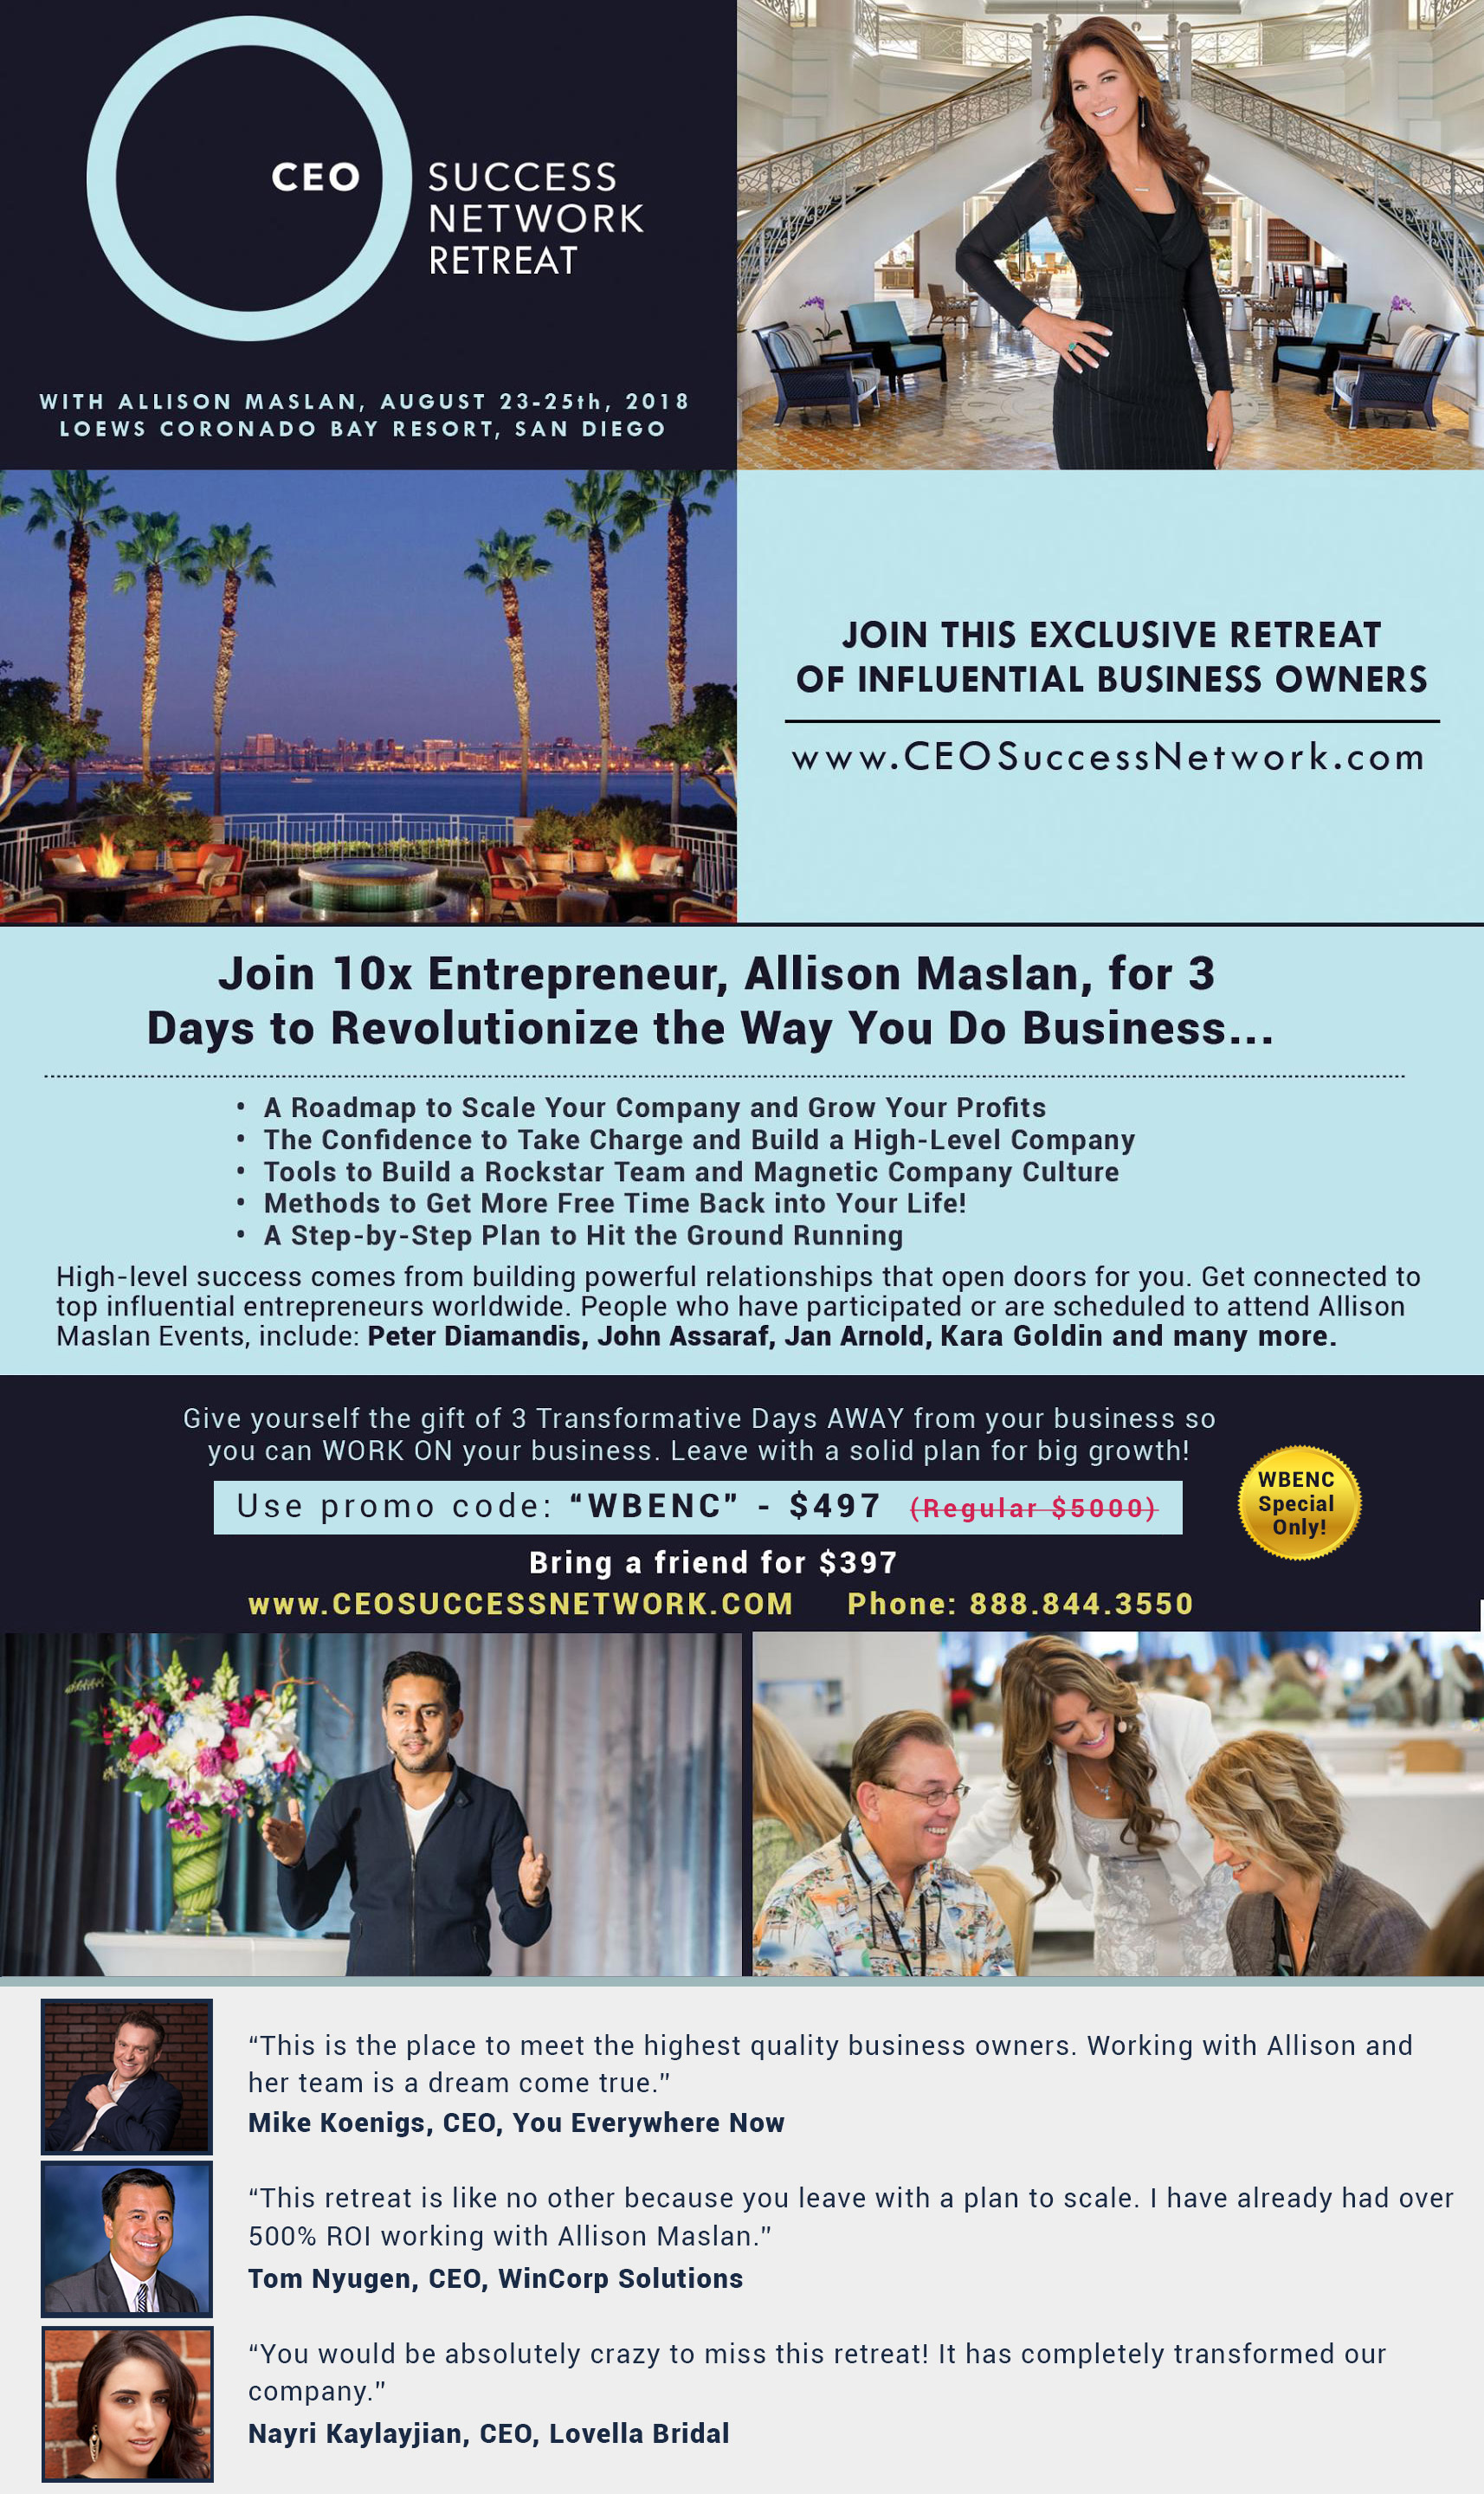 CEO Success Network Retreat